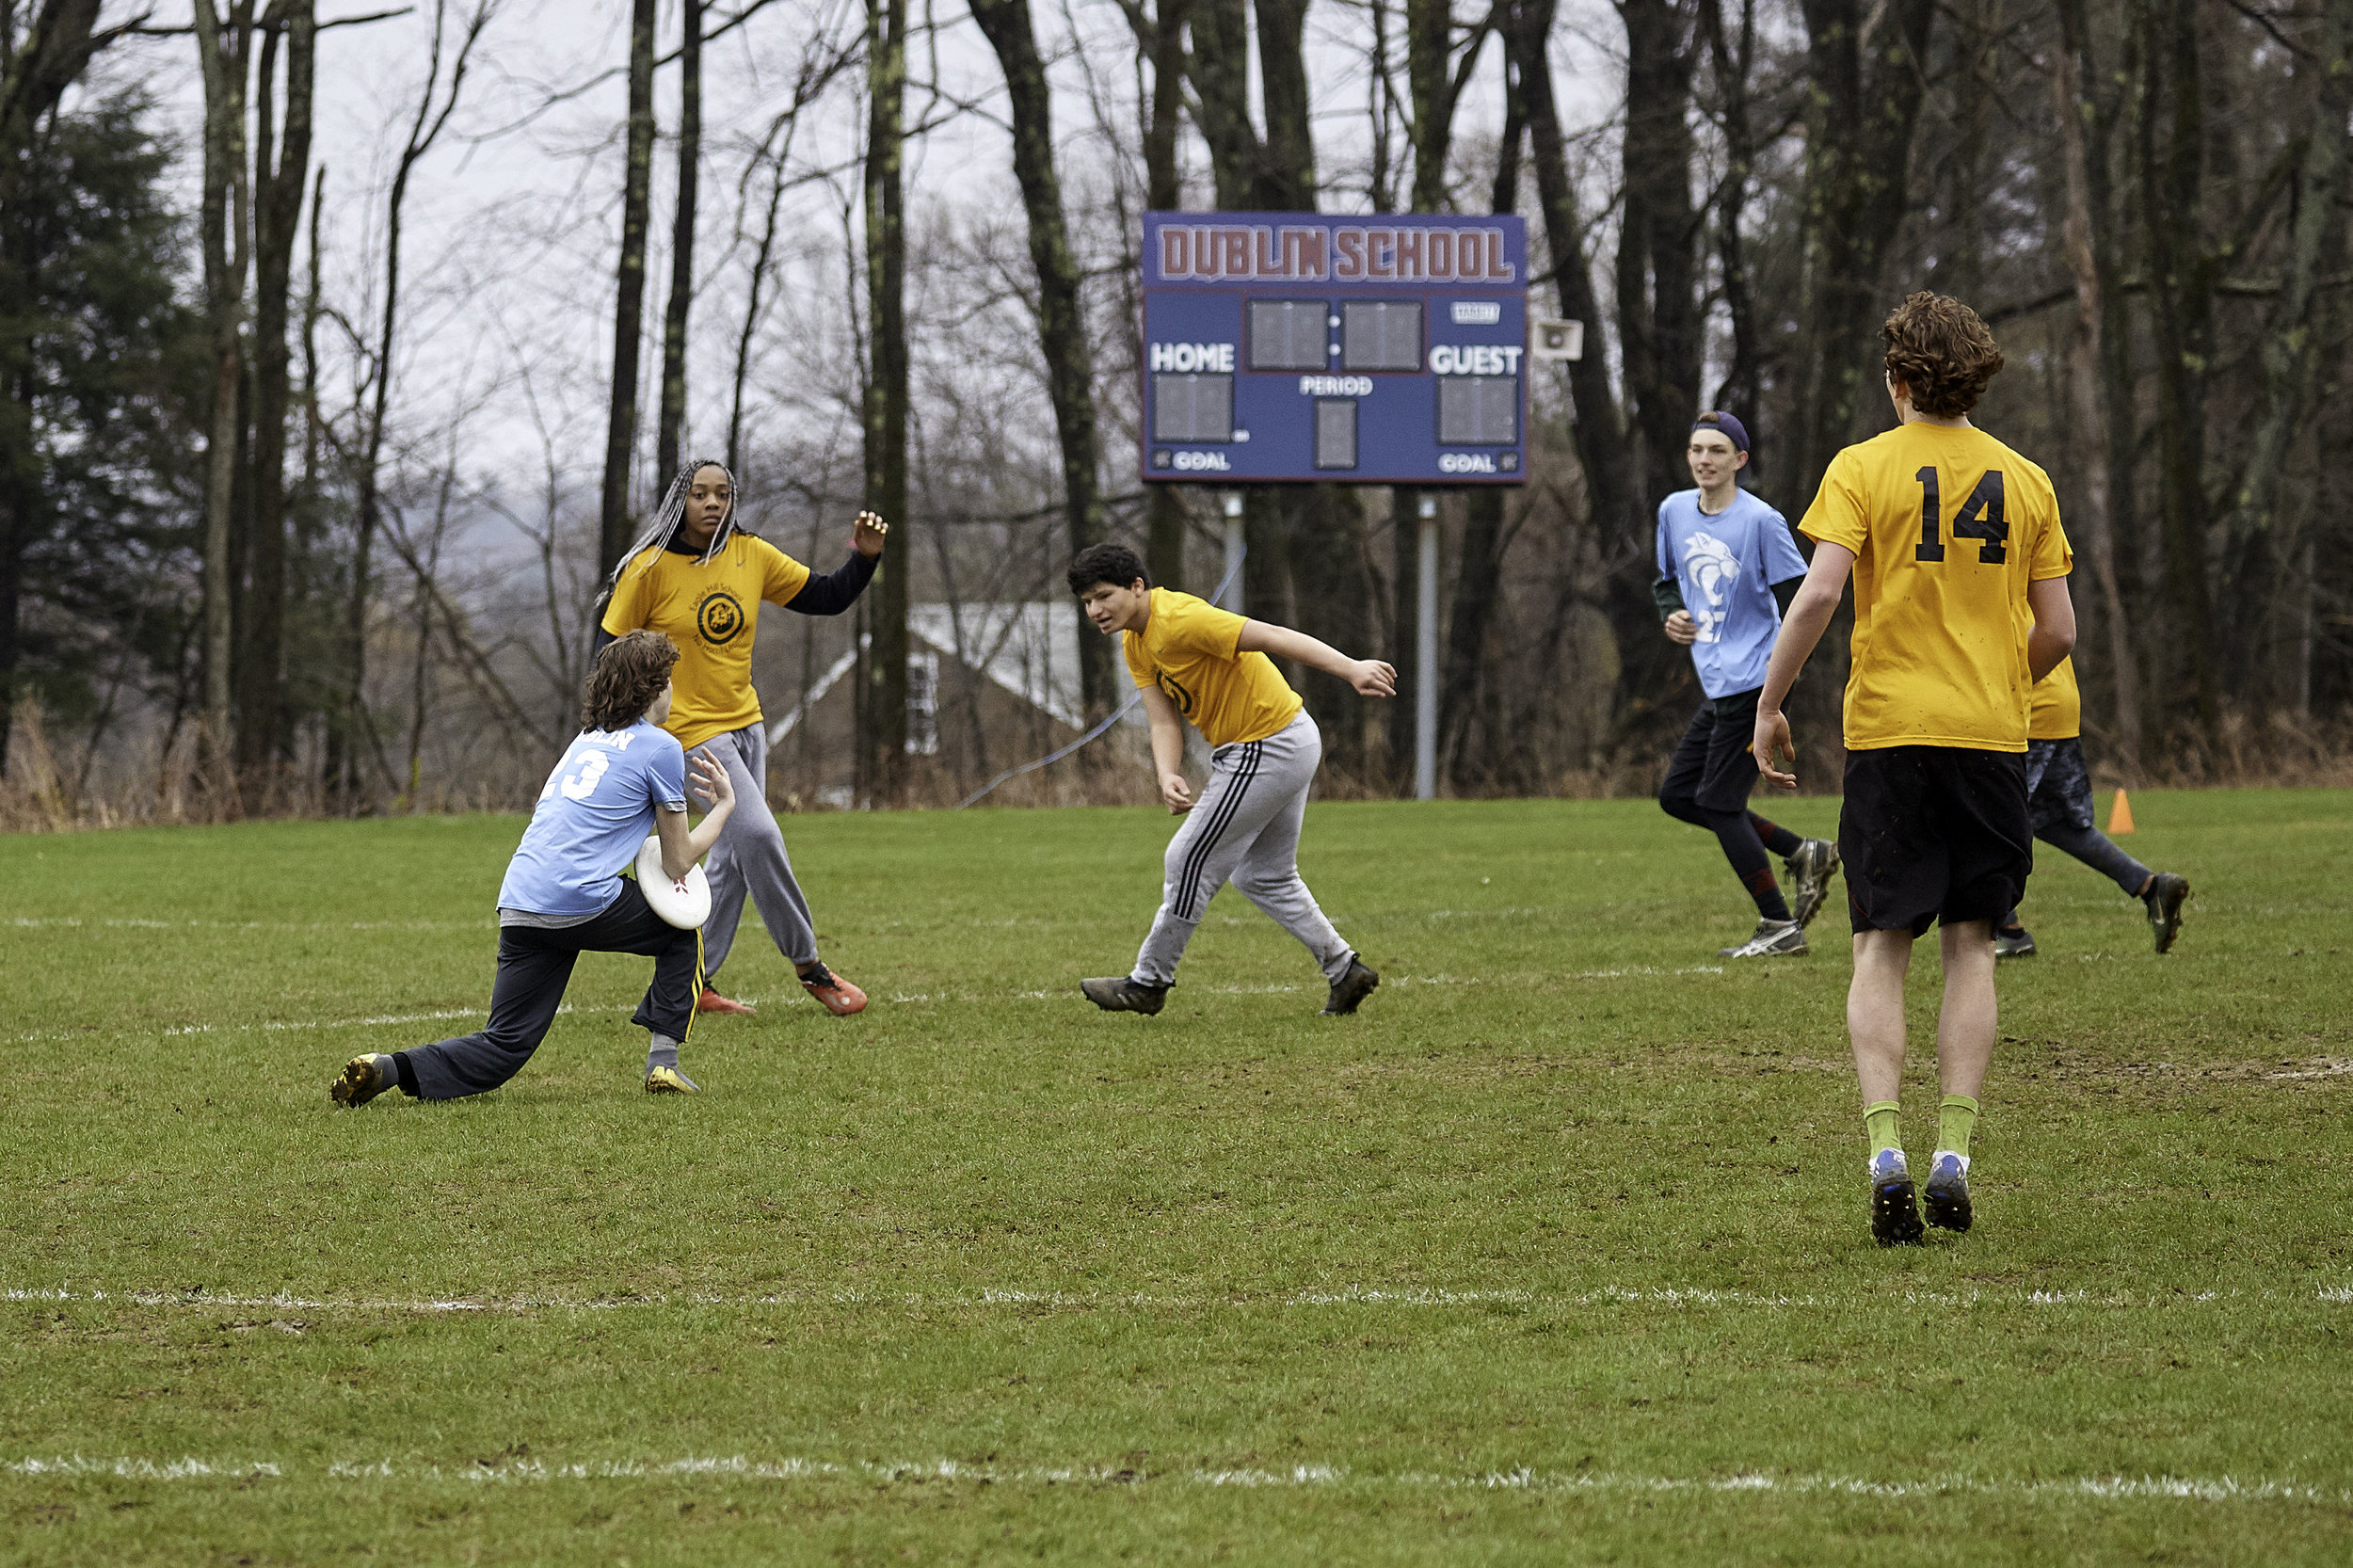 Ultimate Frisbee vs. Eagle Hill School - May 3, 2019 - 188554.jpg